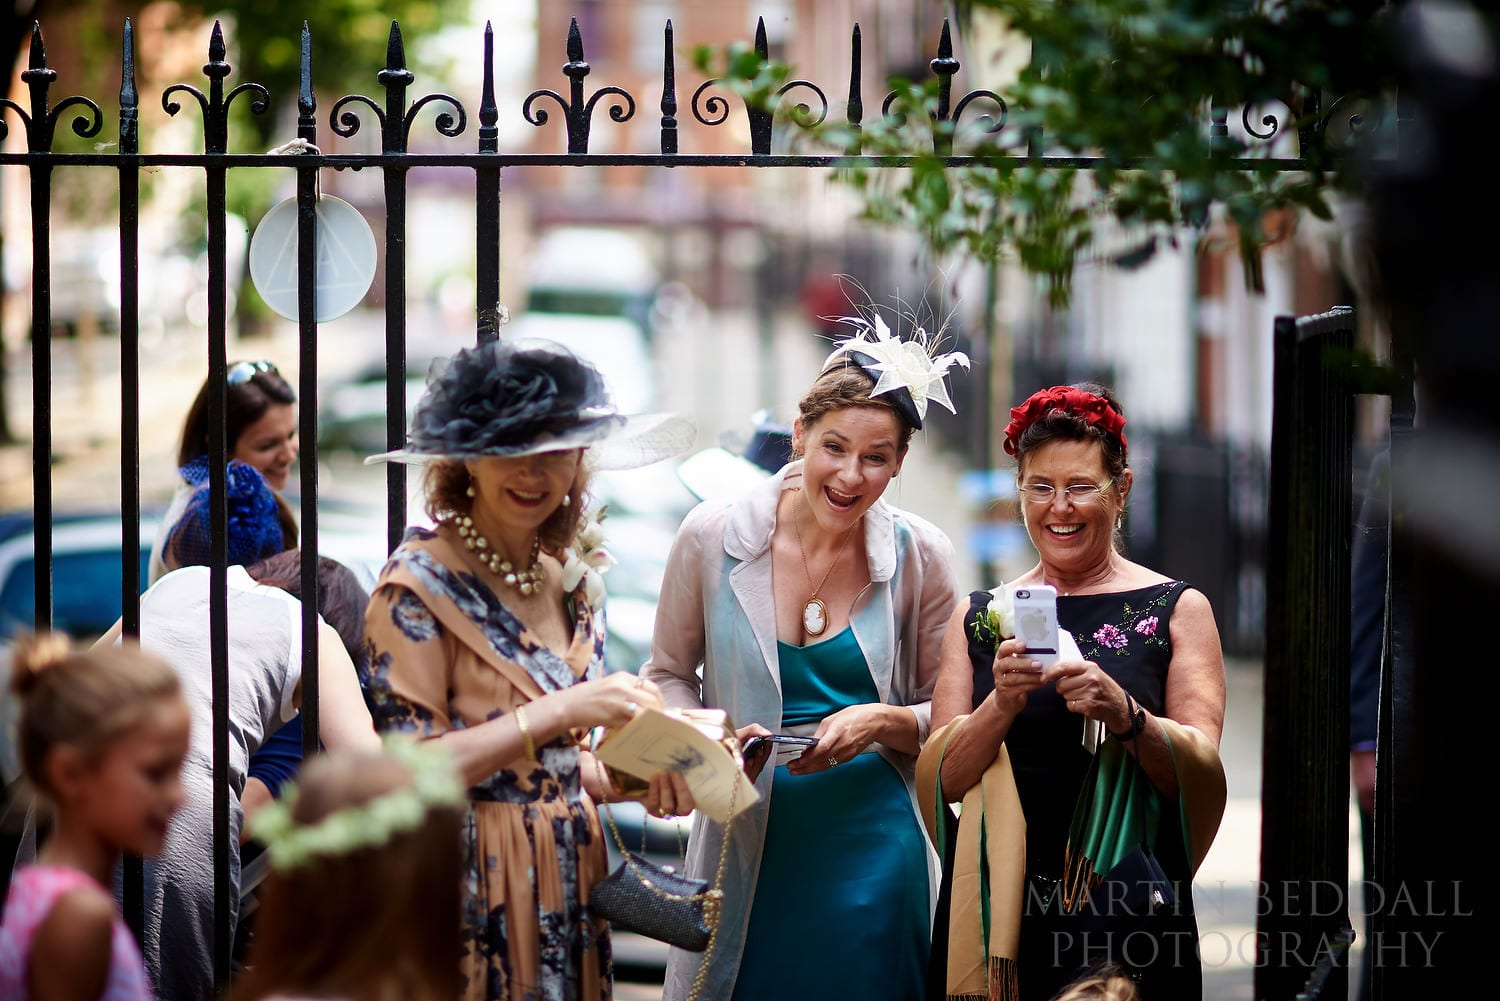 Guests arrive at Hampstead wedding